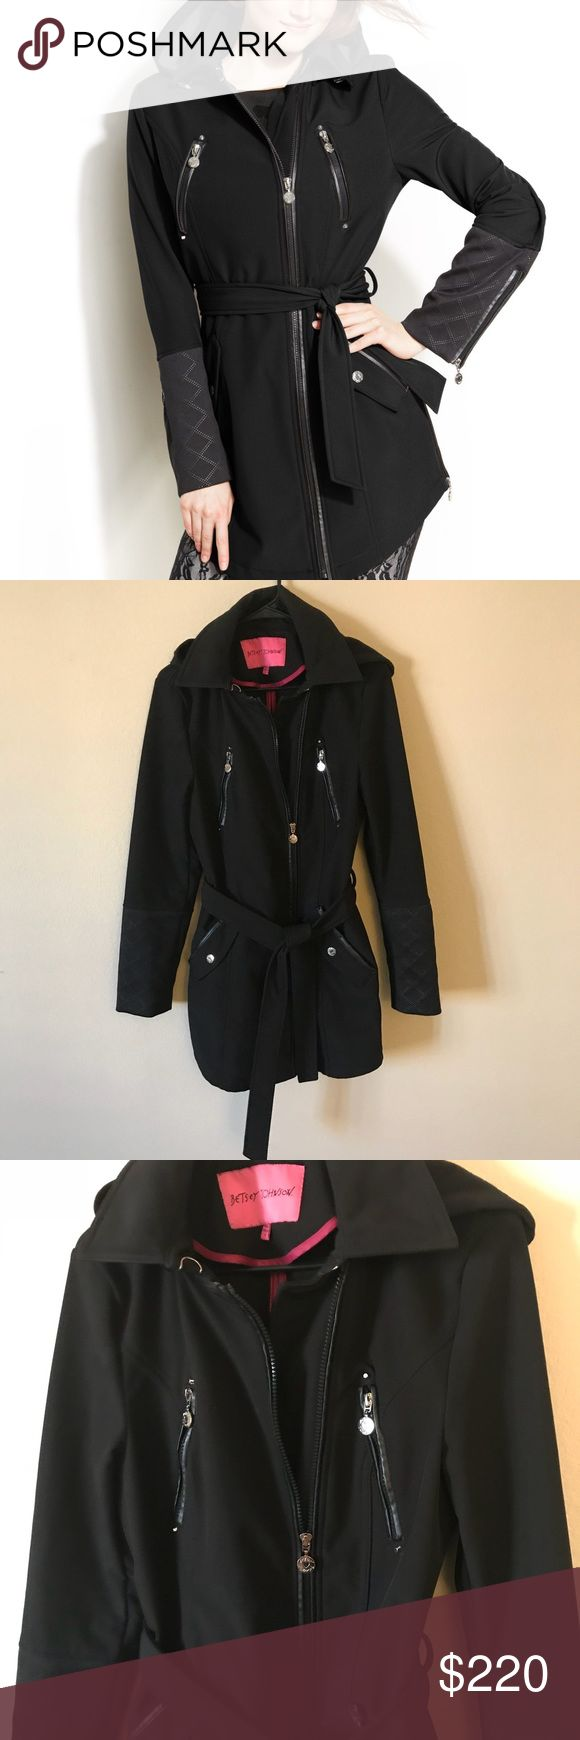 BETSEY JOHNSON HOODED ZIPPER JACKET Good condition. However, purchased it from Nordstrom Rack with a hole on the inside lining of the right pocket. Easy fix though if you care. This jacket gets a lot of compliments. Hood can come off. See last picture for wear on the main zipper pull. Other zippers look good! Betsey Johnson Jackets & Coats